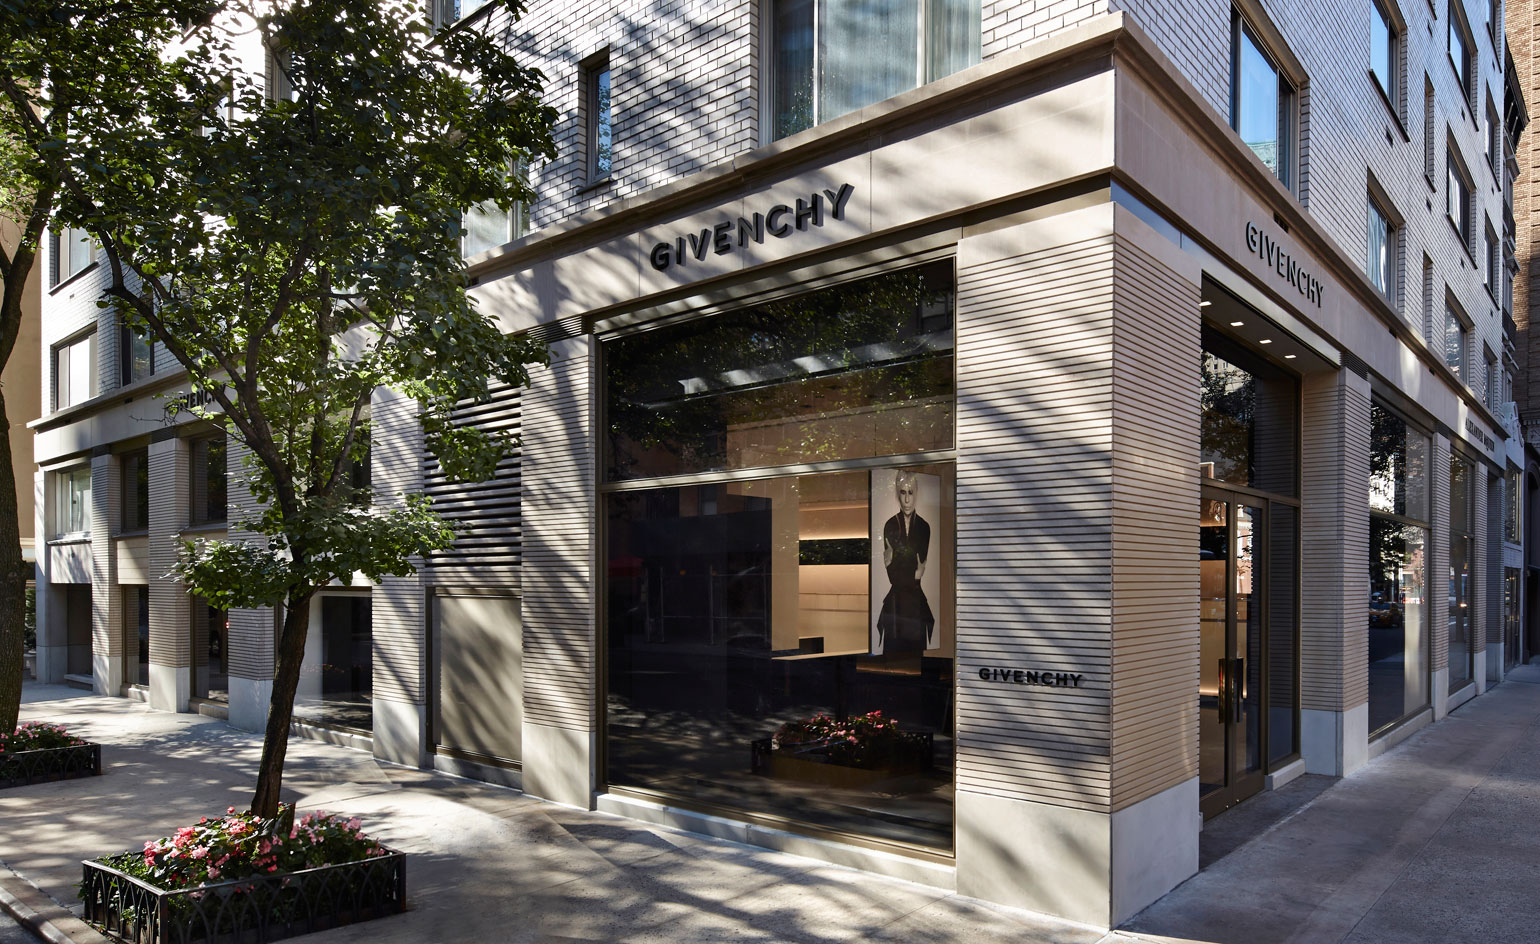 Givenchy's new flagship store in Manhattan's Upper East Side.